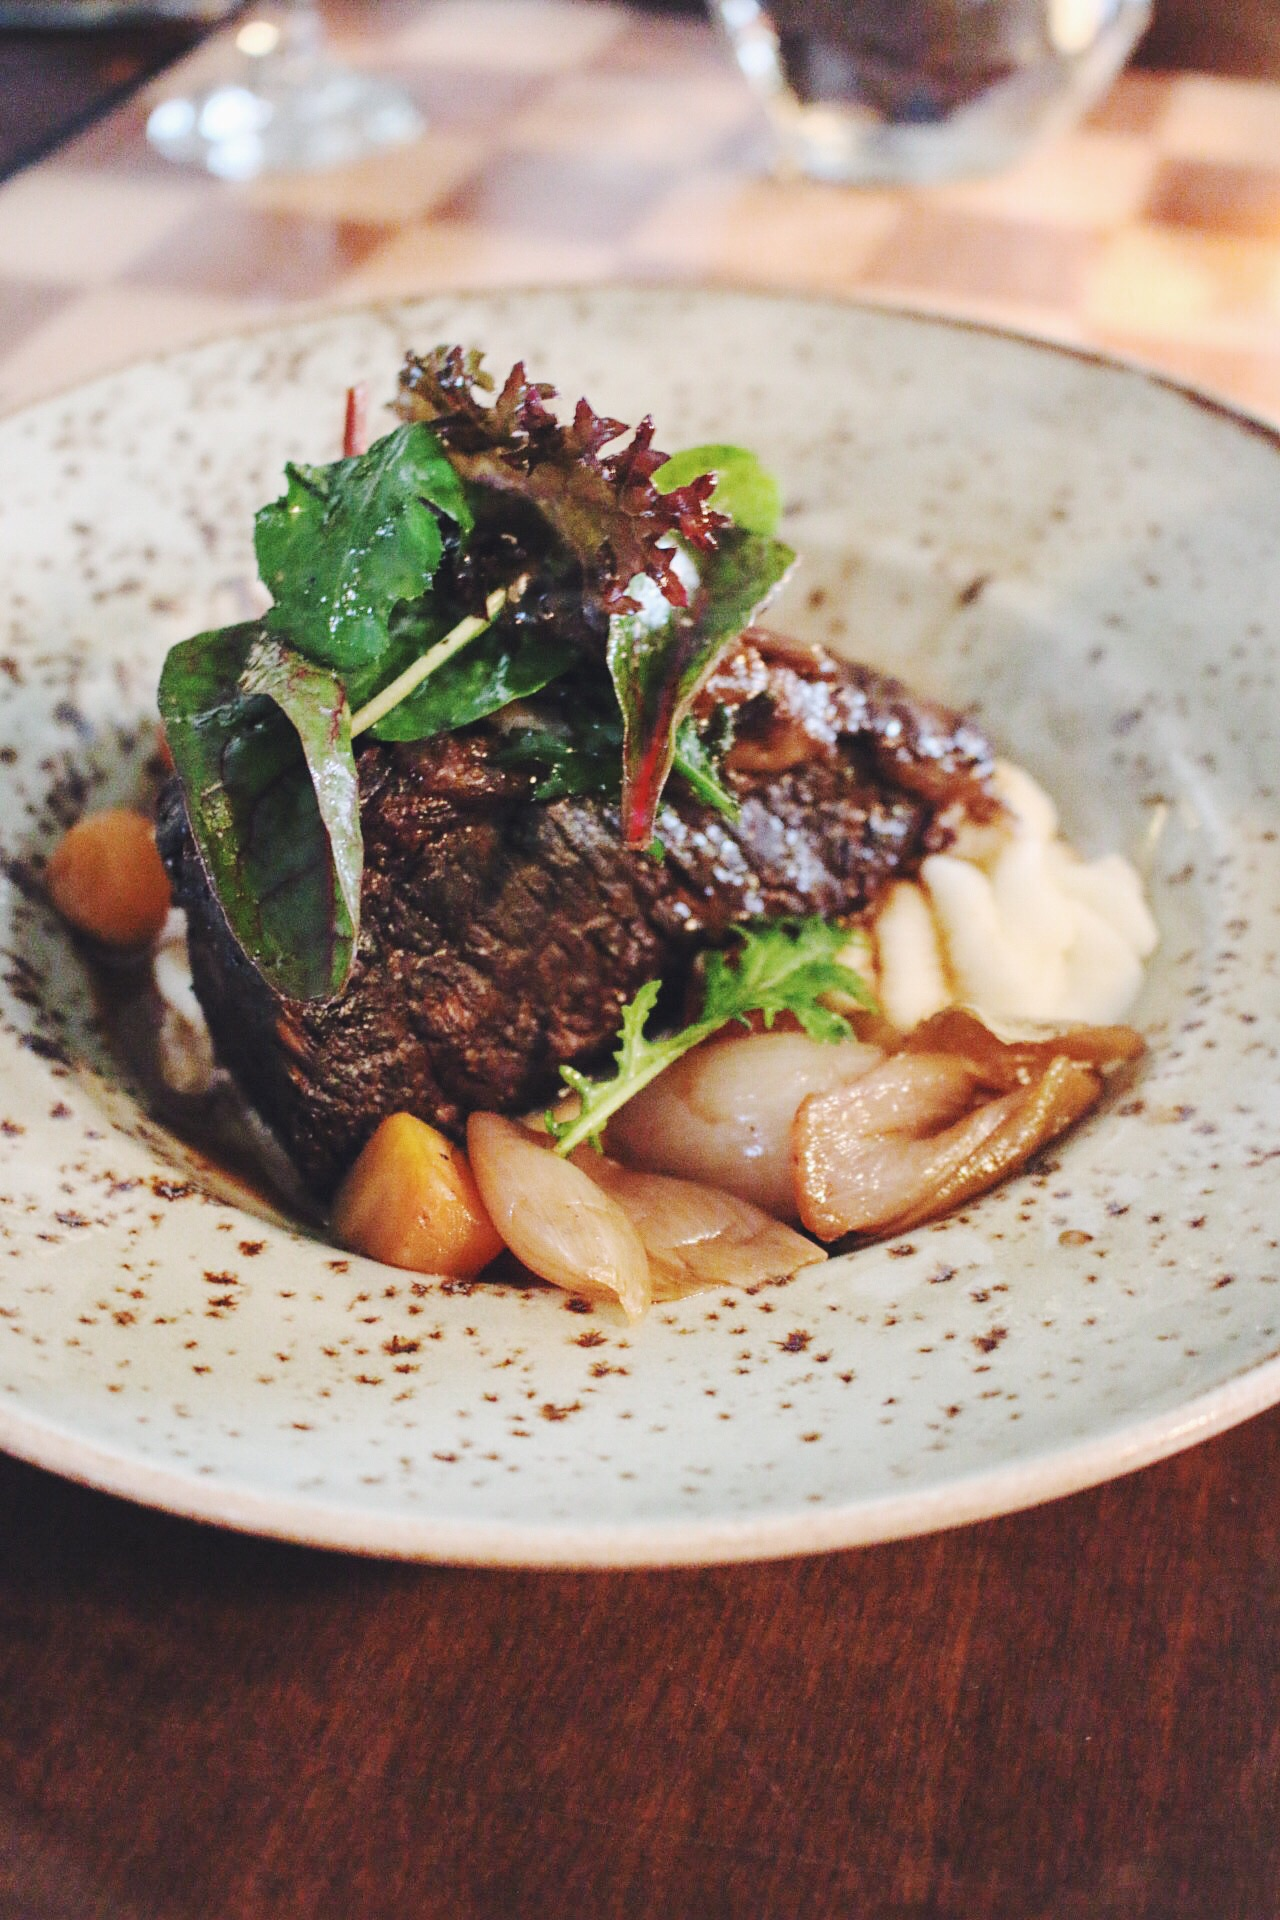 Red wine braised short rib with root vegetables